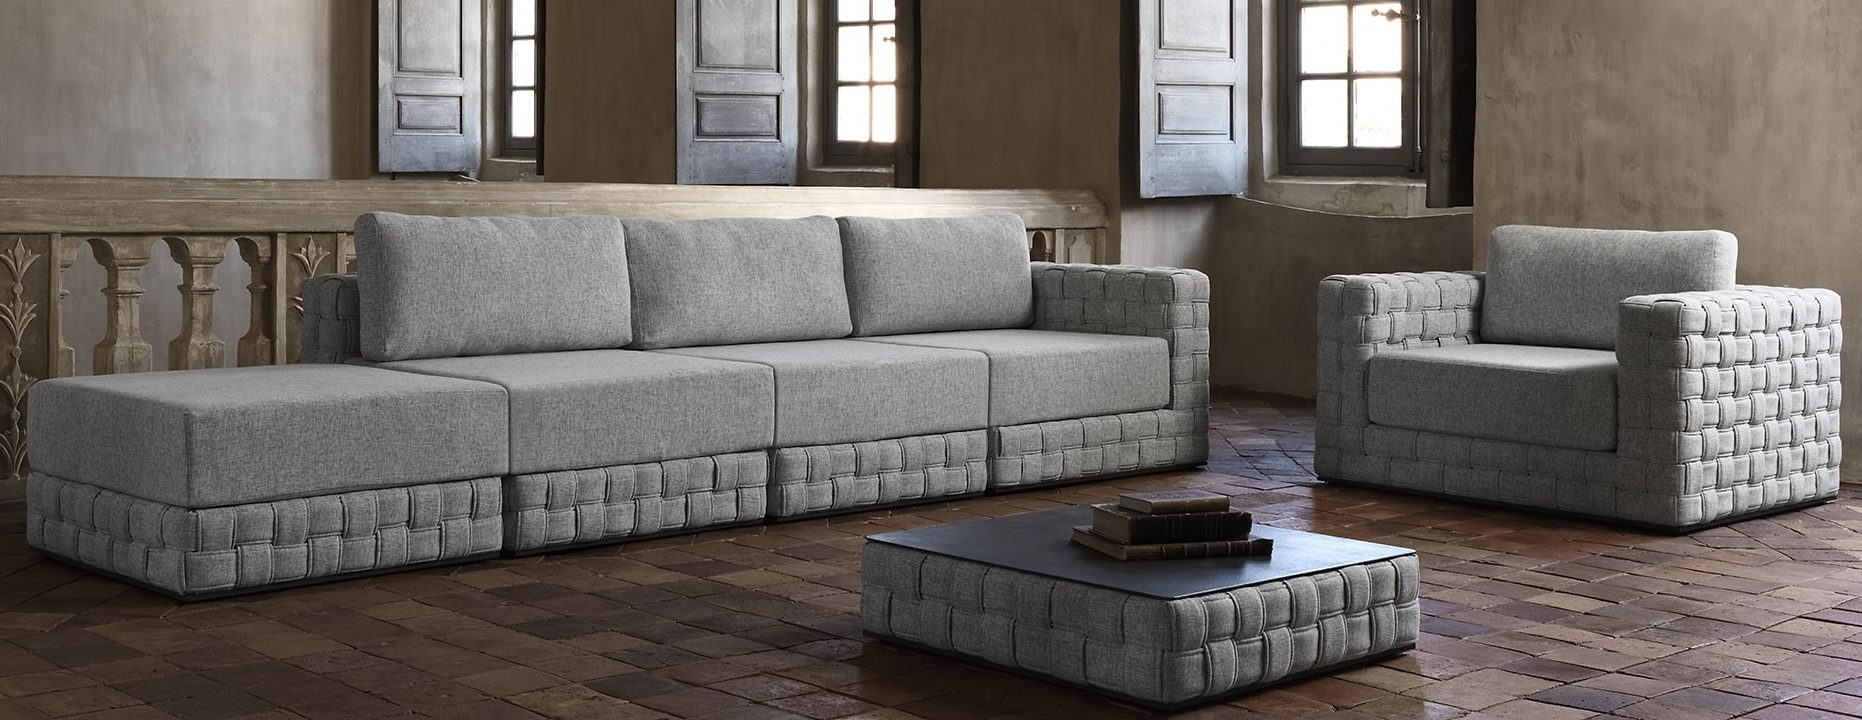 baron sectional modular sofa couture outdoor. Black Bedroom Furniture Sets. Home Design Ideas